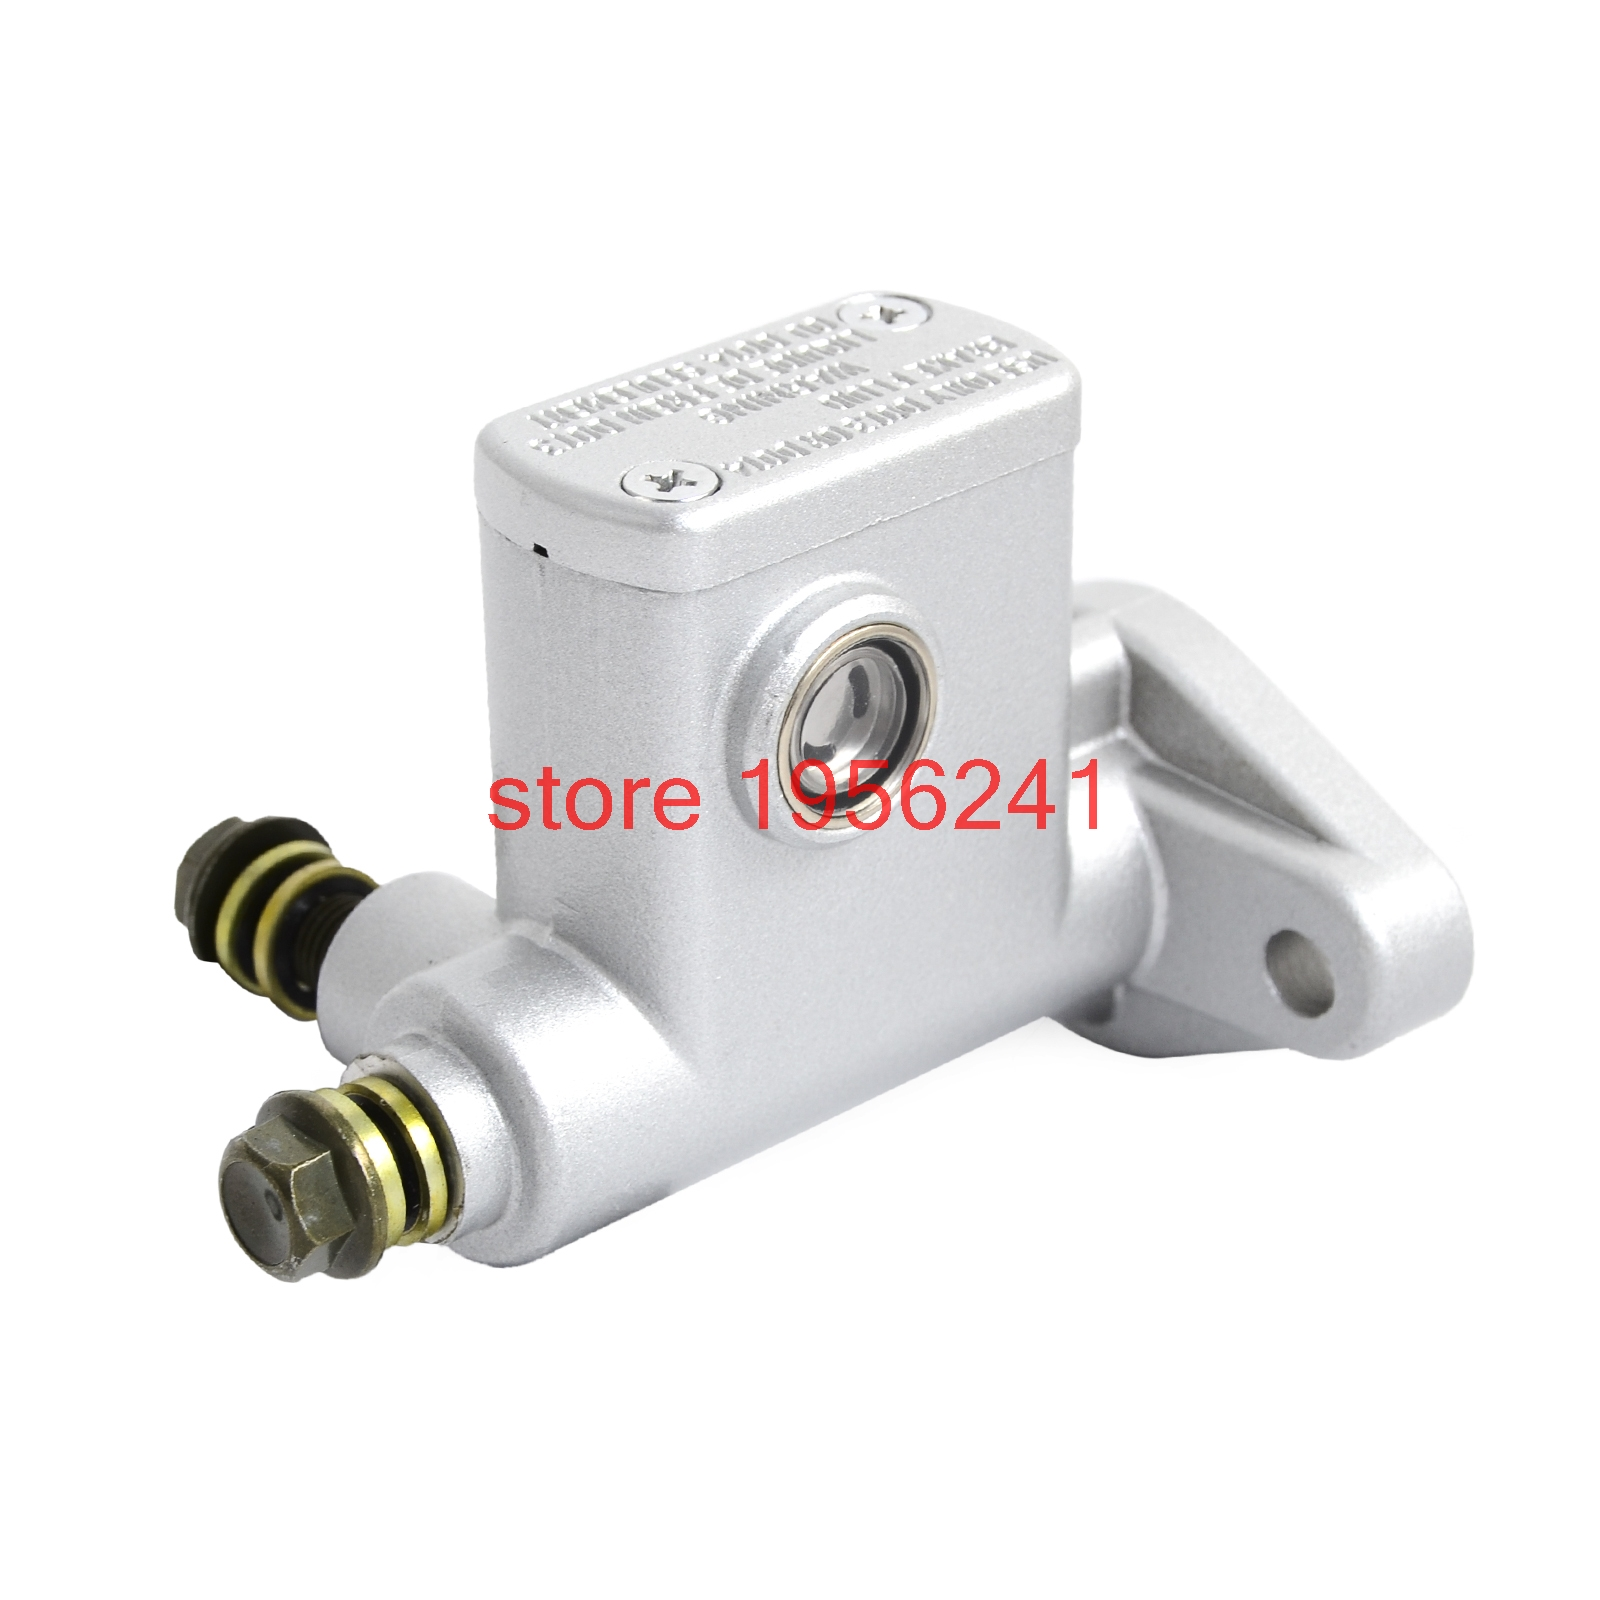 Chinese Go Kart Rear Hydraulic Brake Master Cylinder Version 4 For Many 50cc 90cc 110cc and 150cc models